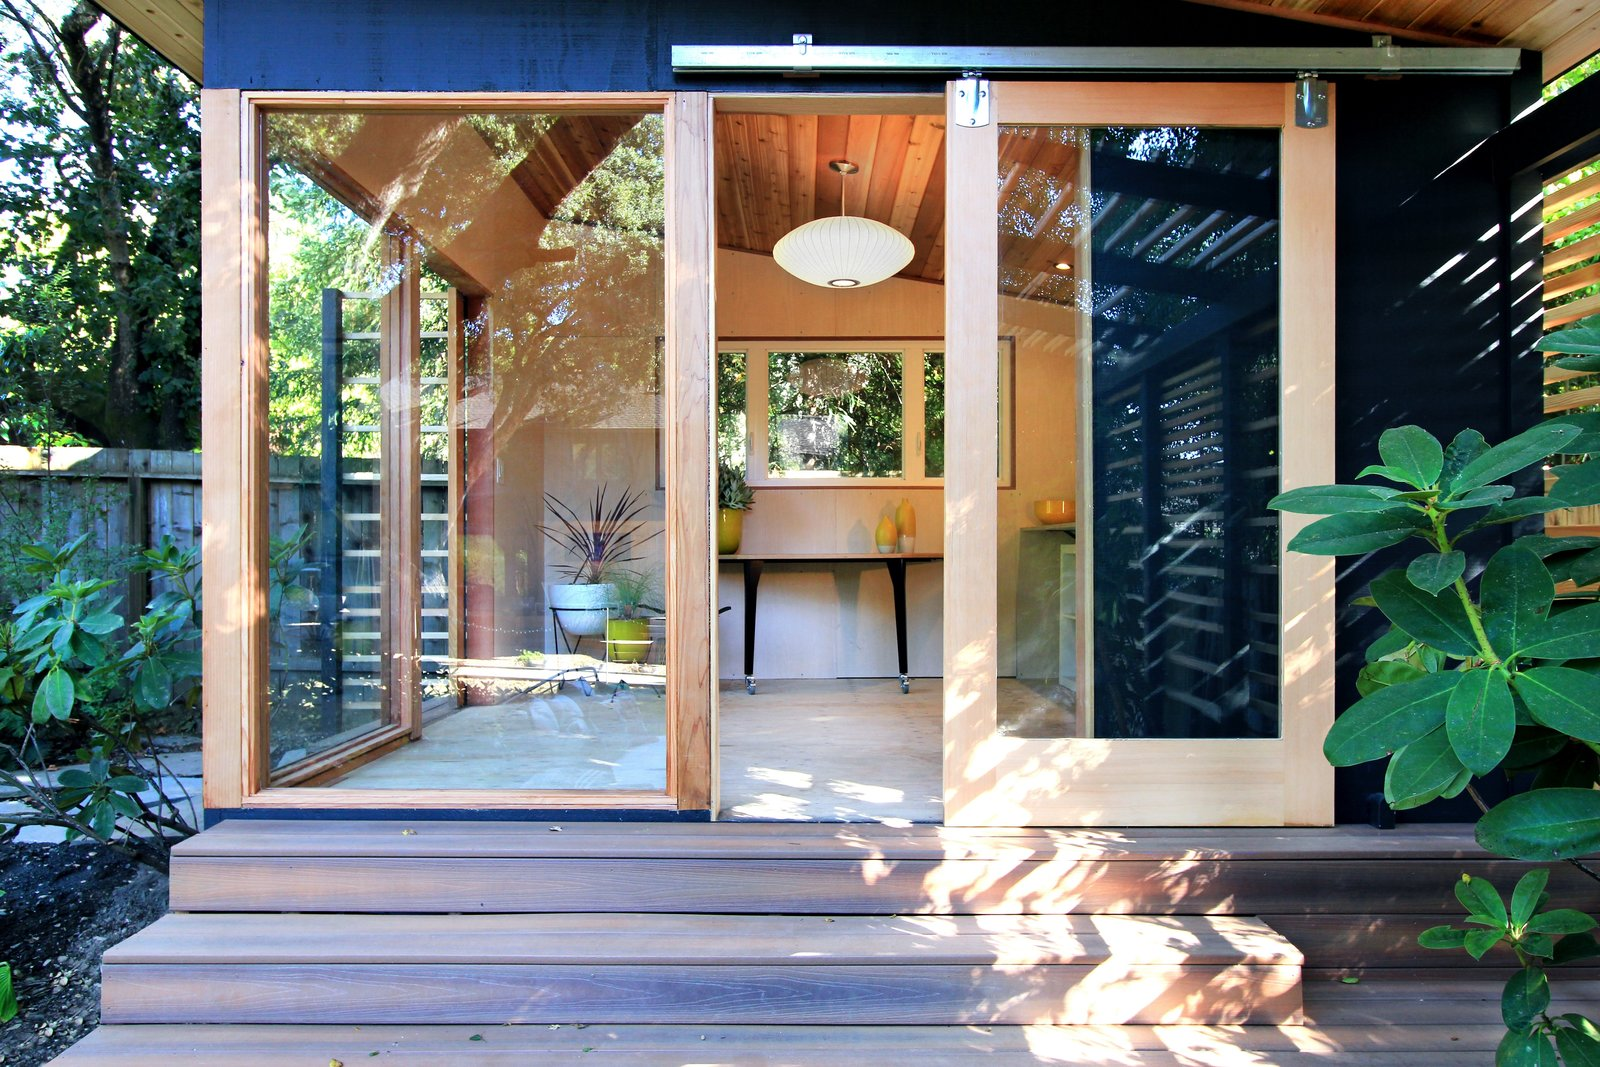 The Shudio exterior and interior.  Tagged: Boulders, Wood Patio, Porch, Deck, Hanging Lighting, Landscape Lighting, Horizontal Fences, Wall, and Kids Room.  The Shudio by Melissa Hanley